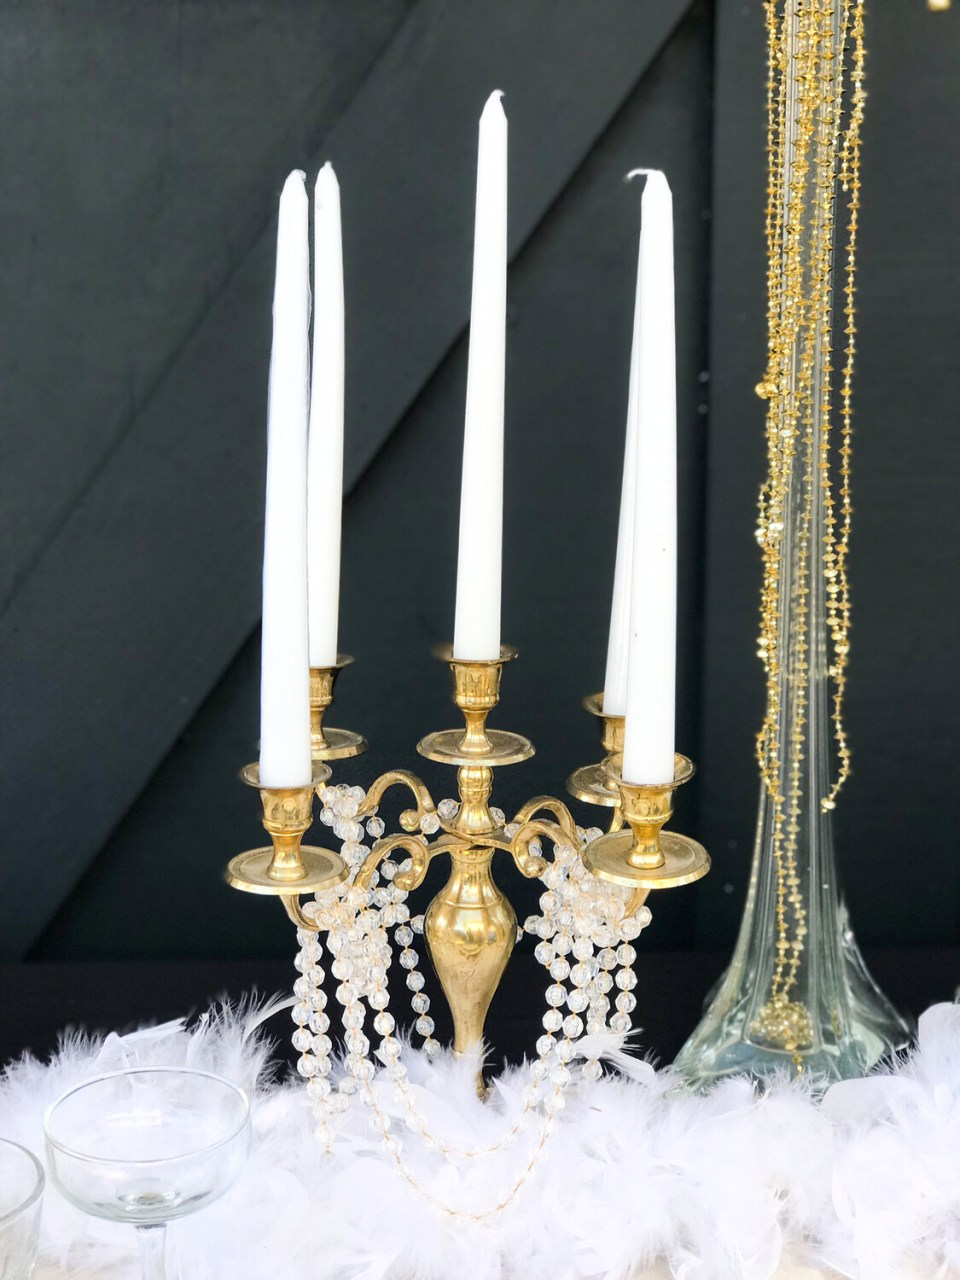 5L Gold Tableabra (11 inches tall)